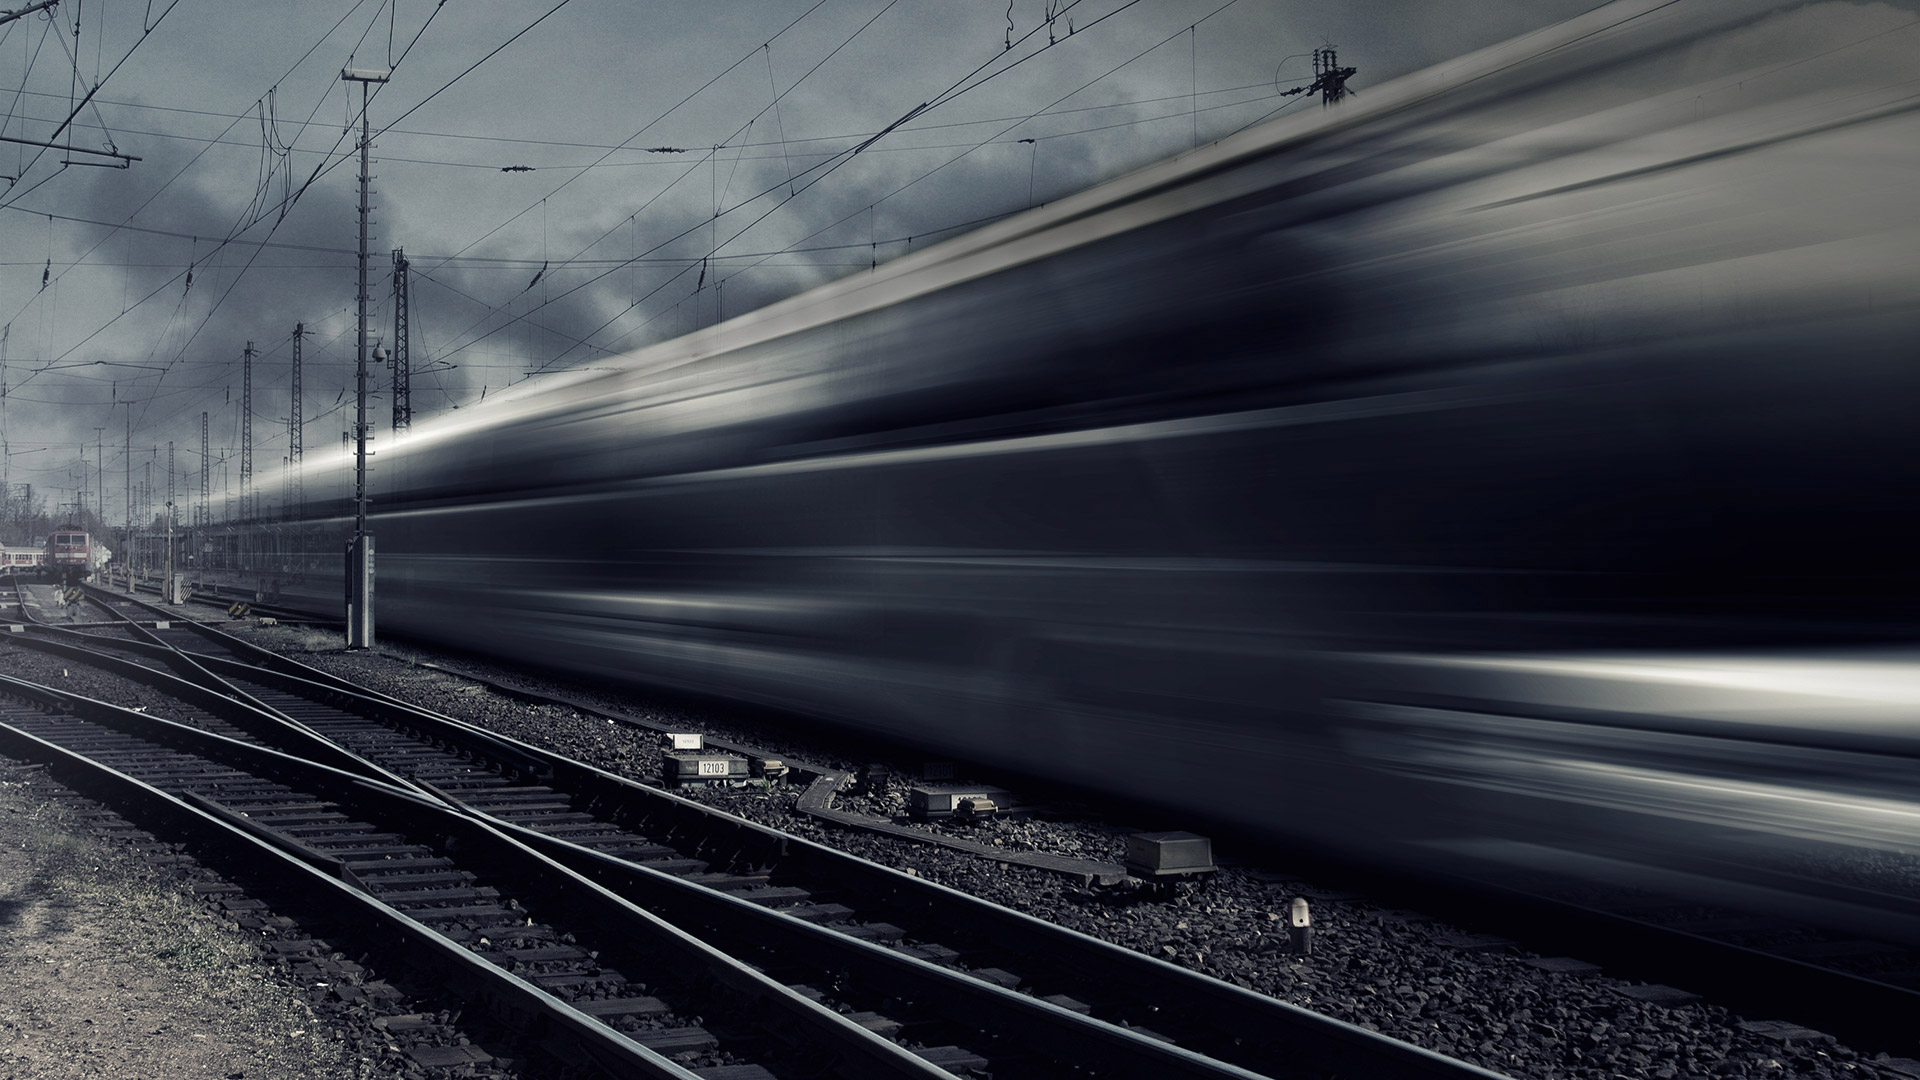 High-speed train visualizes the topic of derailment protection: sensors for train protection systems